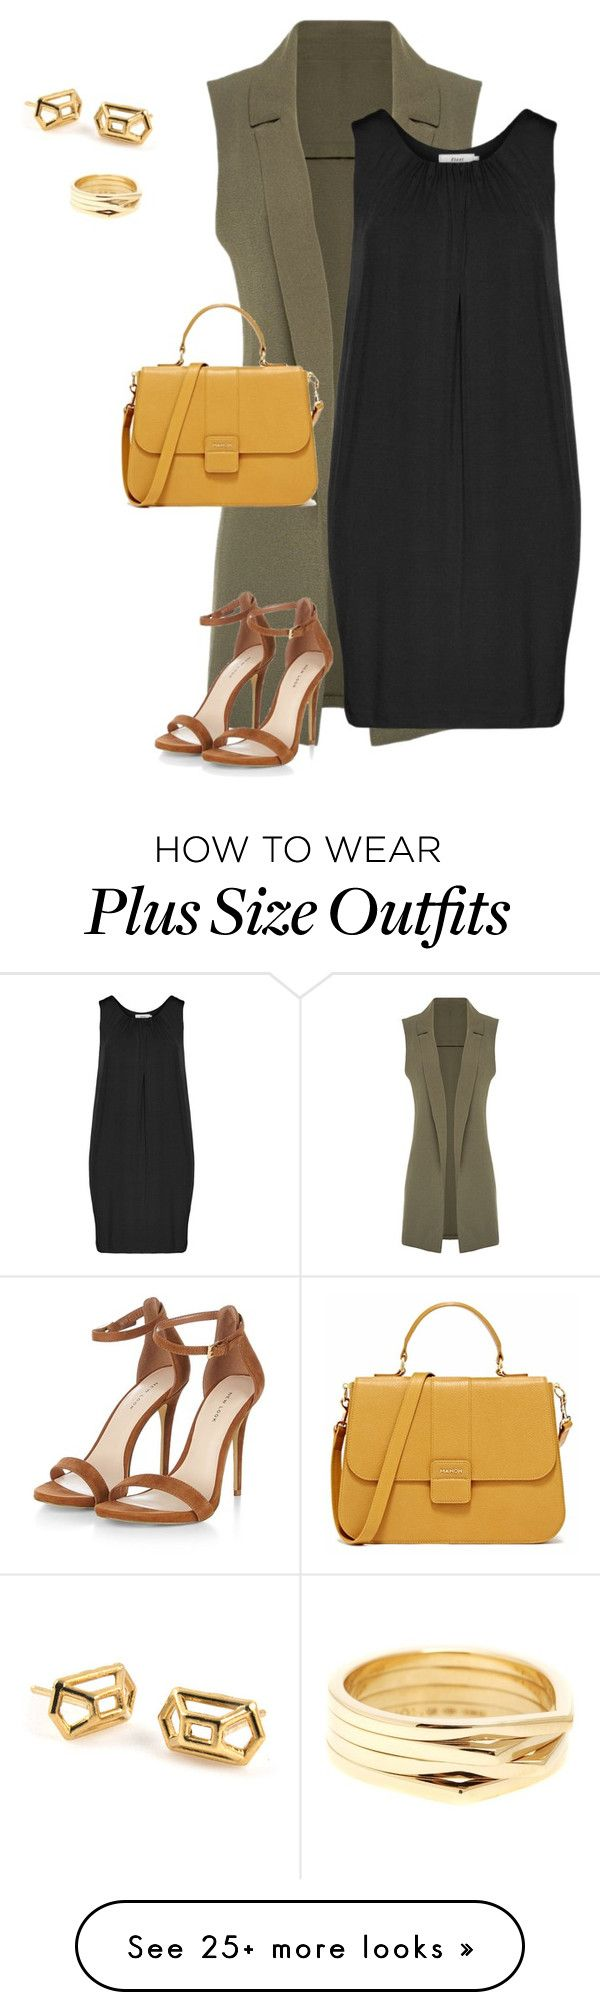 """plus size office chic for spring"" by kristie-payne on Polyvore featuring moda, Zizzi, Repossi, women's clothing, women, female, woman, misses i juniors"